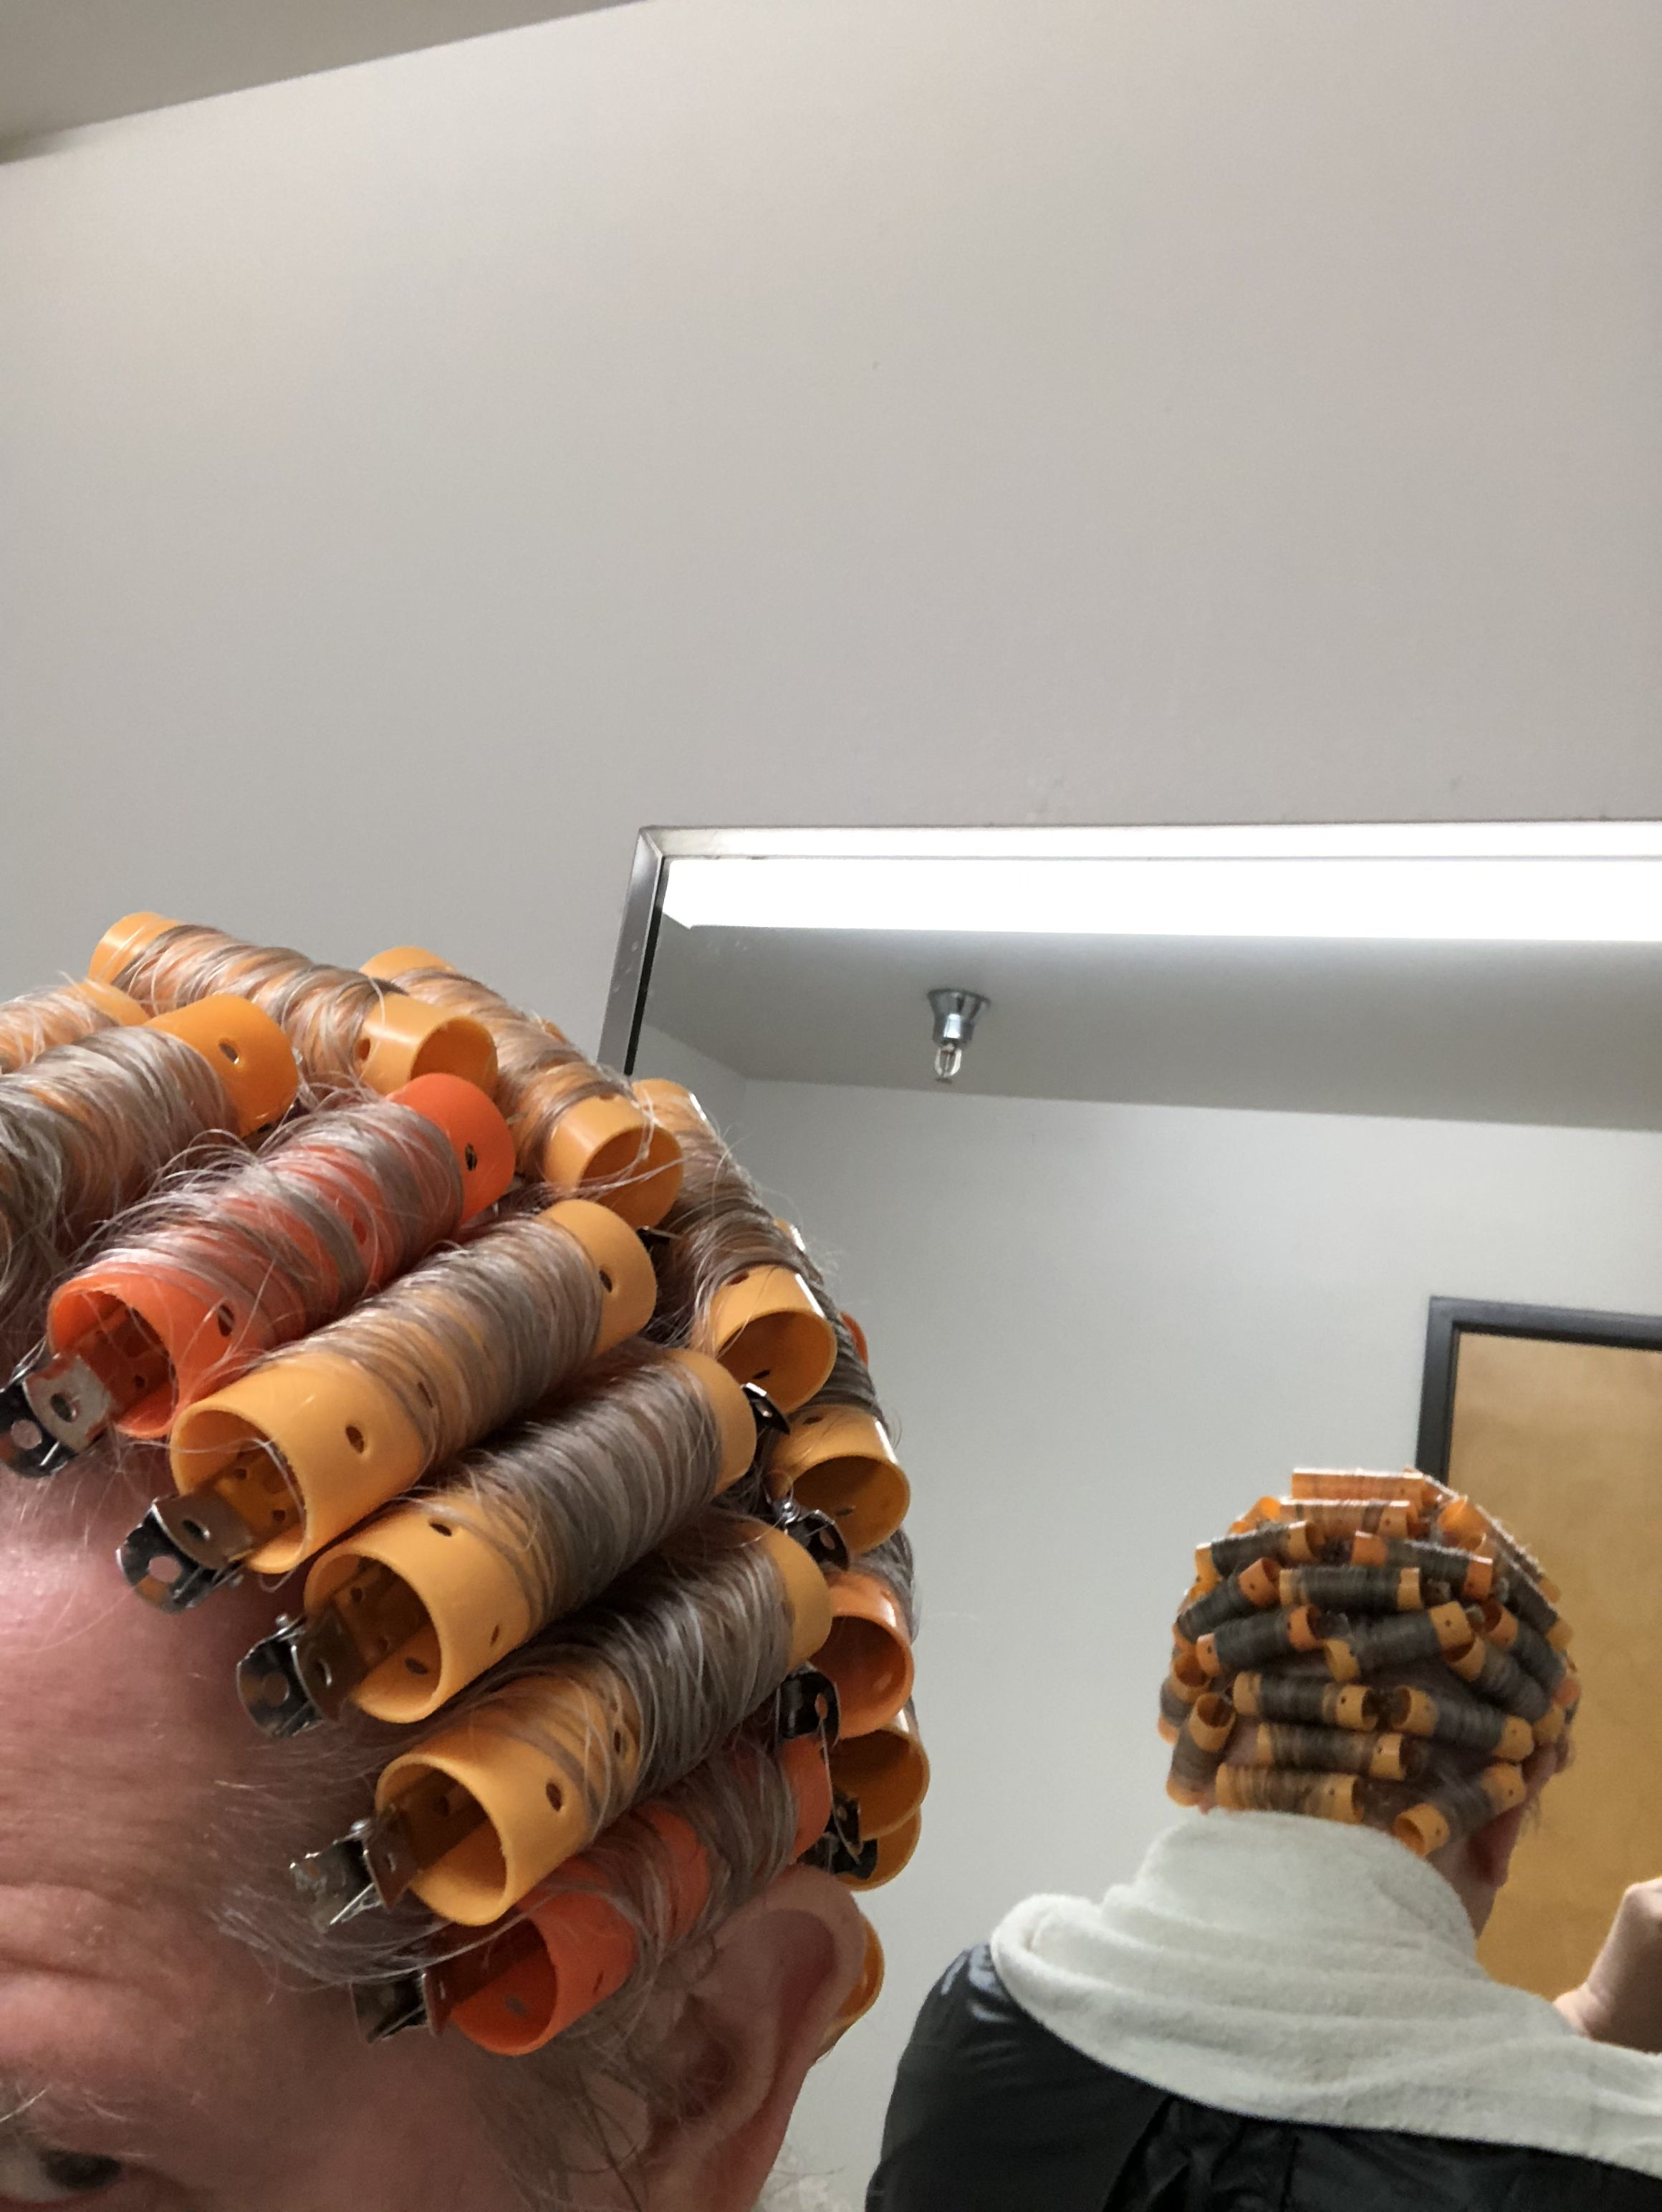 His wife said use the orange rollers this time. Hair